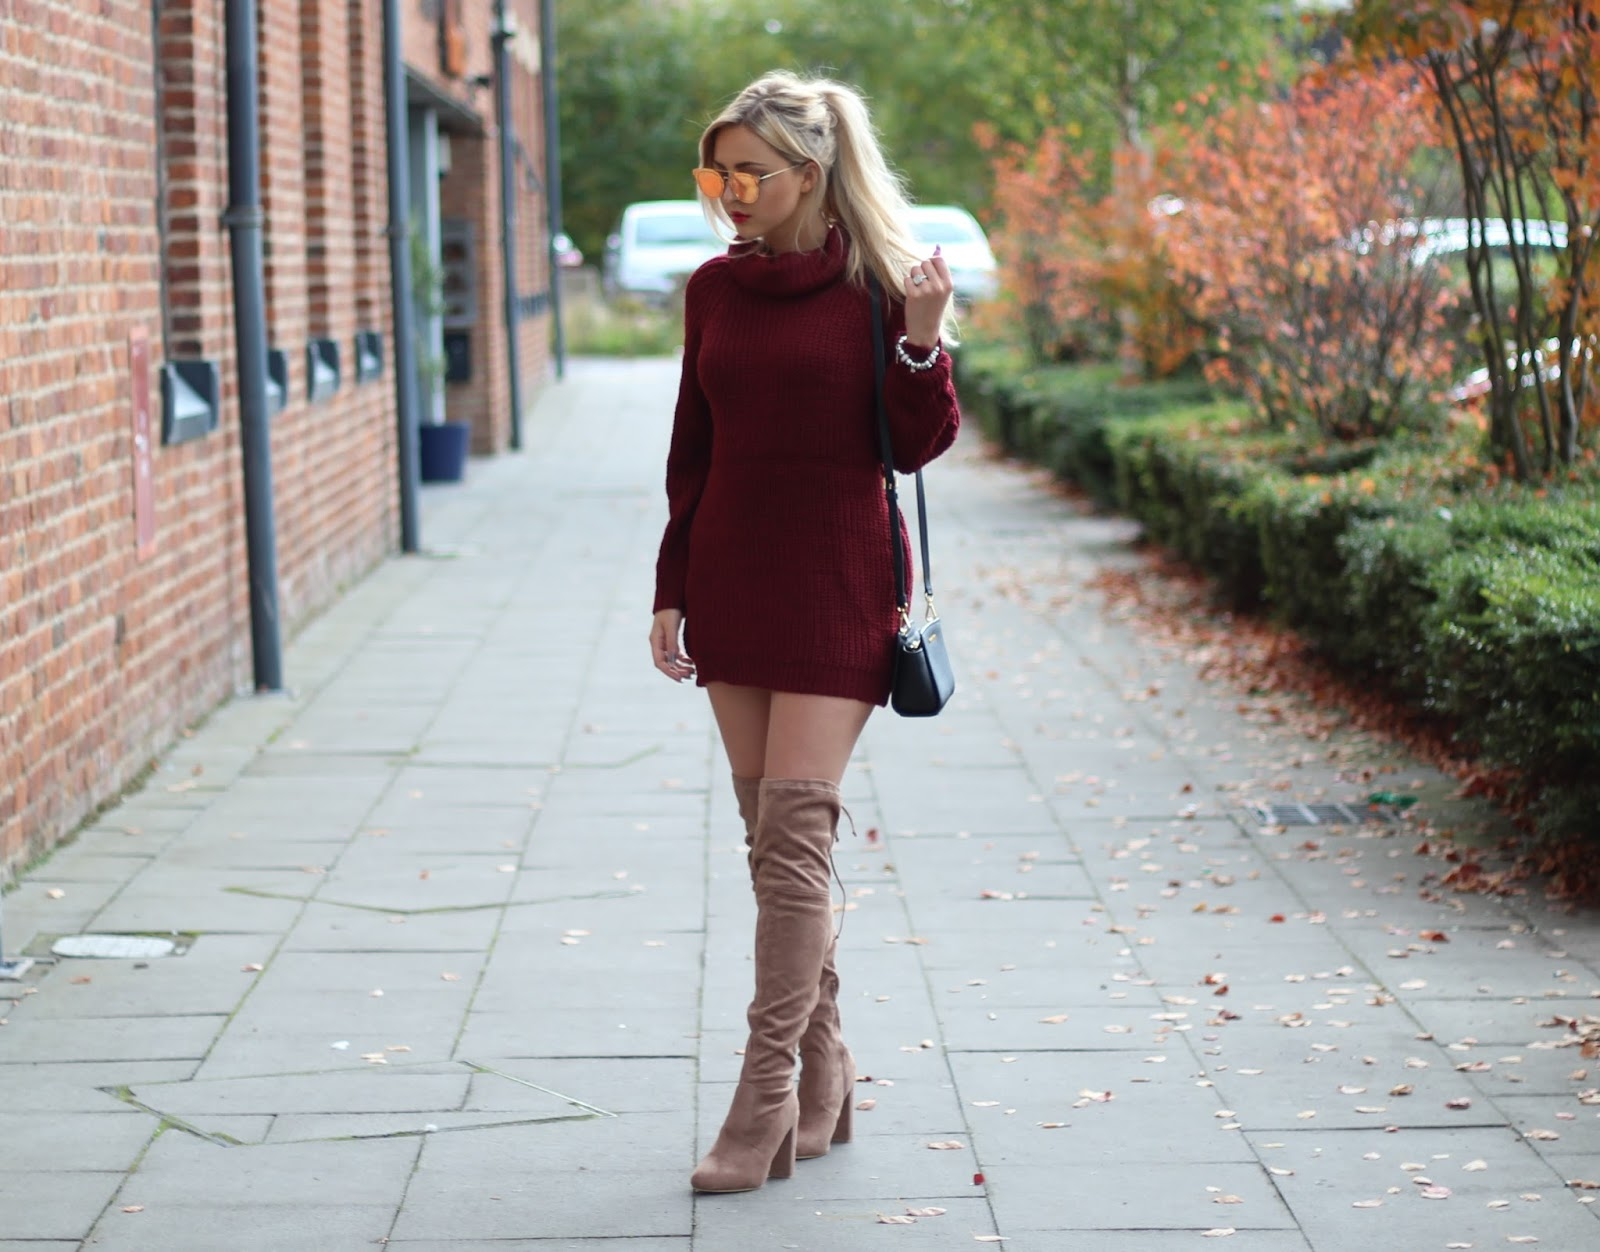 Autumn Style Jumper Dresses Knee High Boots Couture Girl